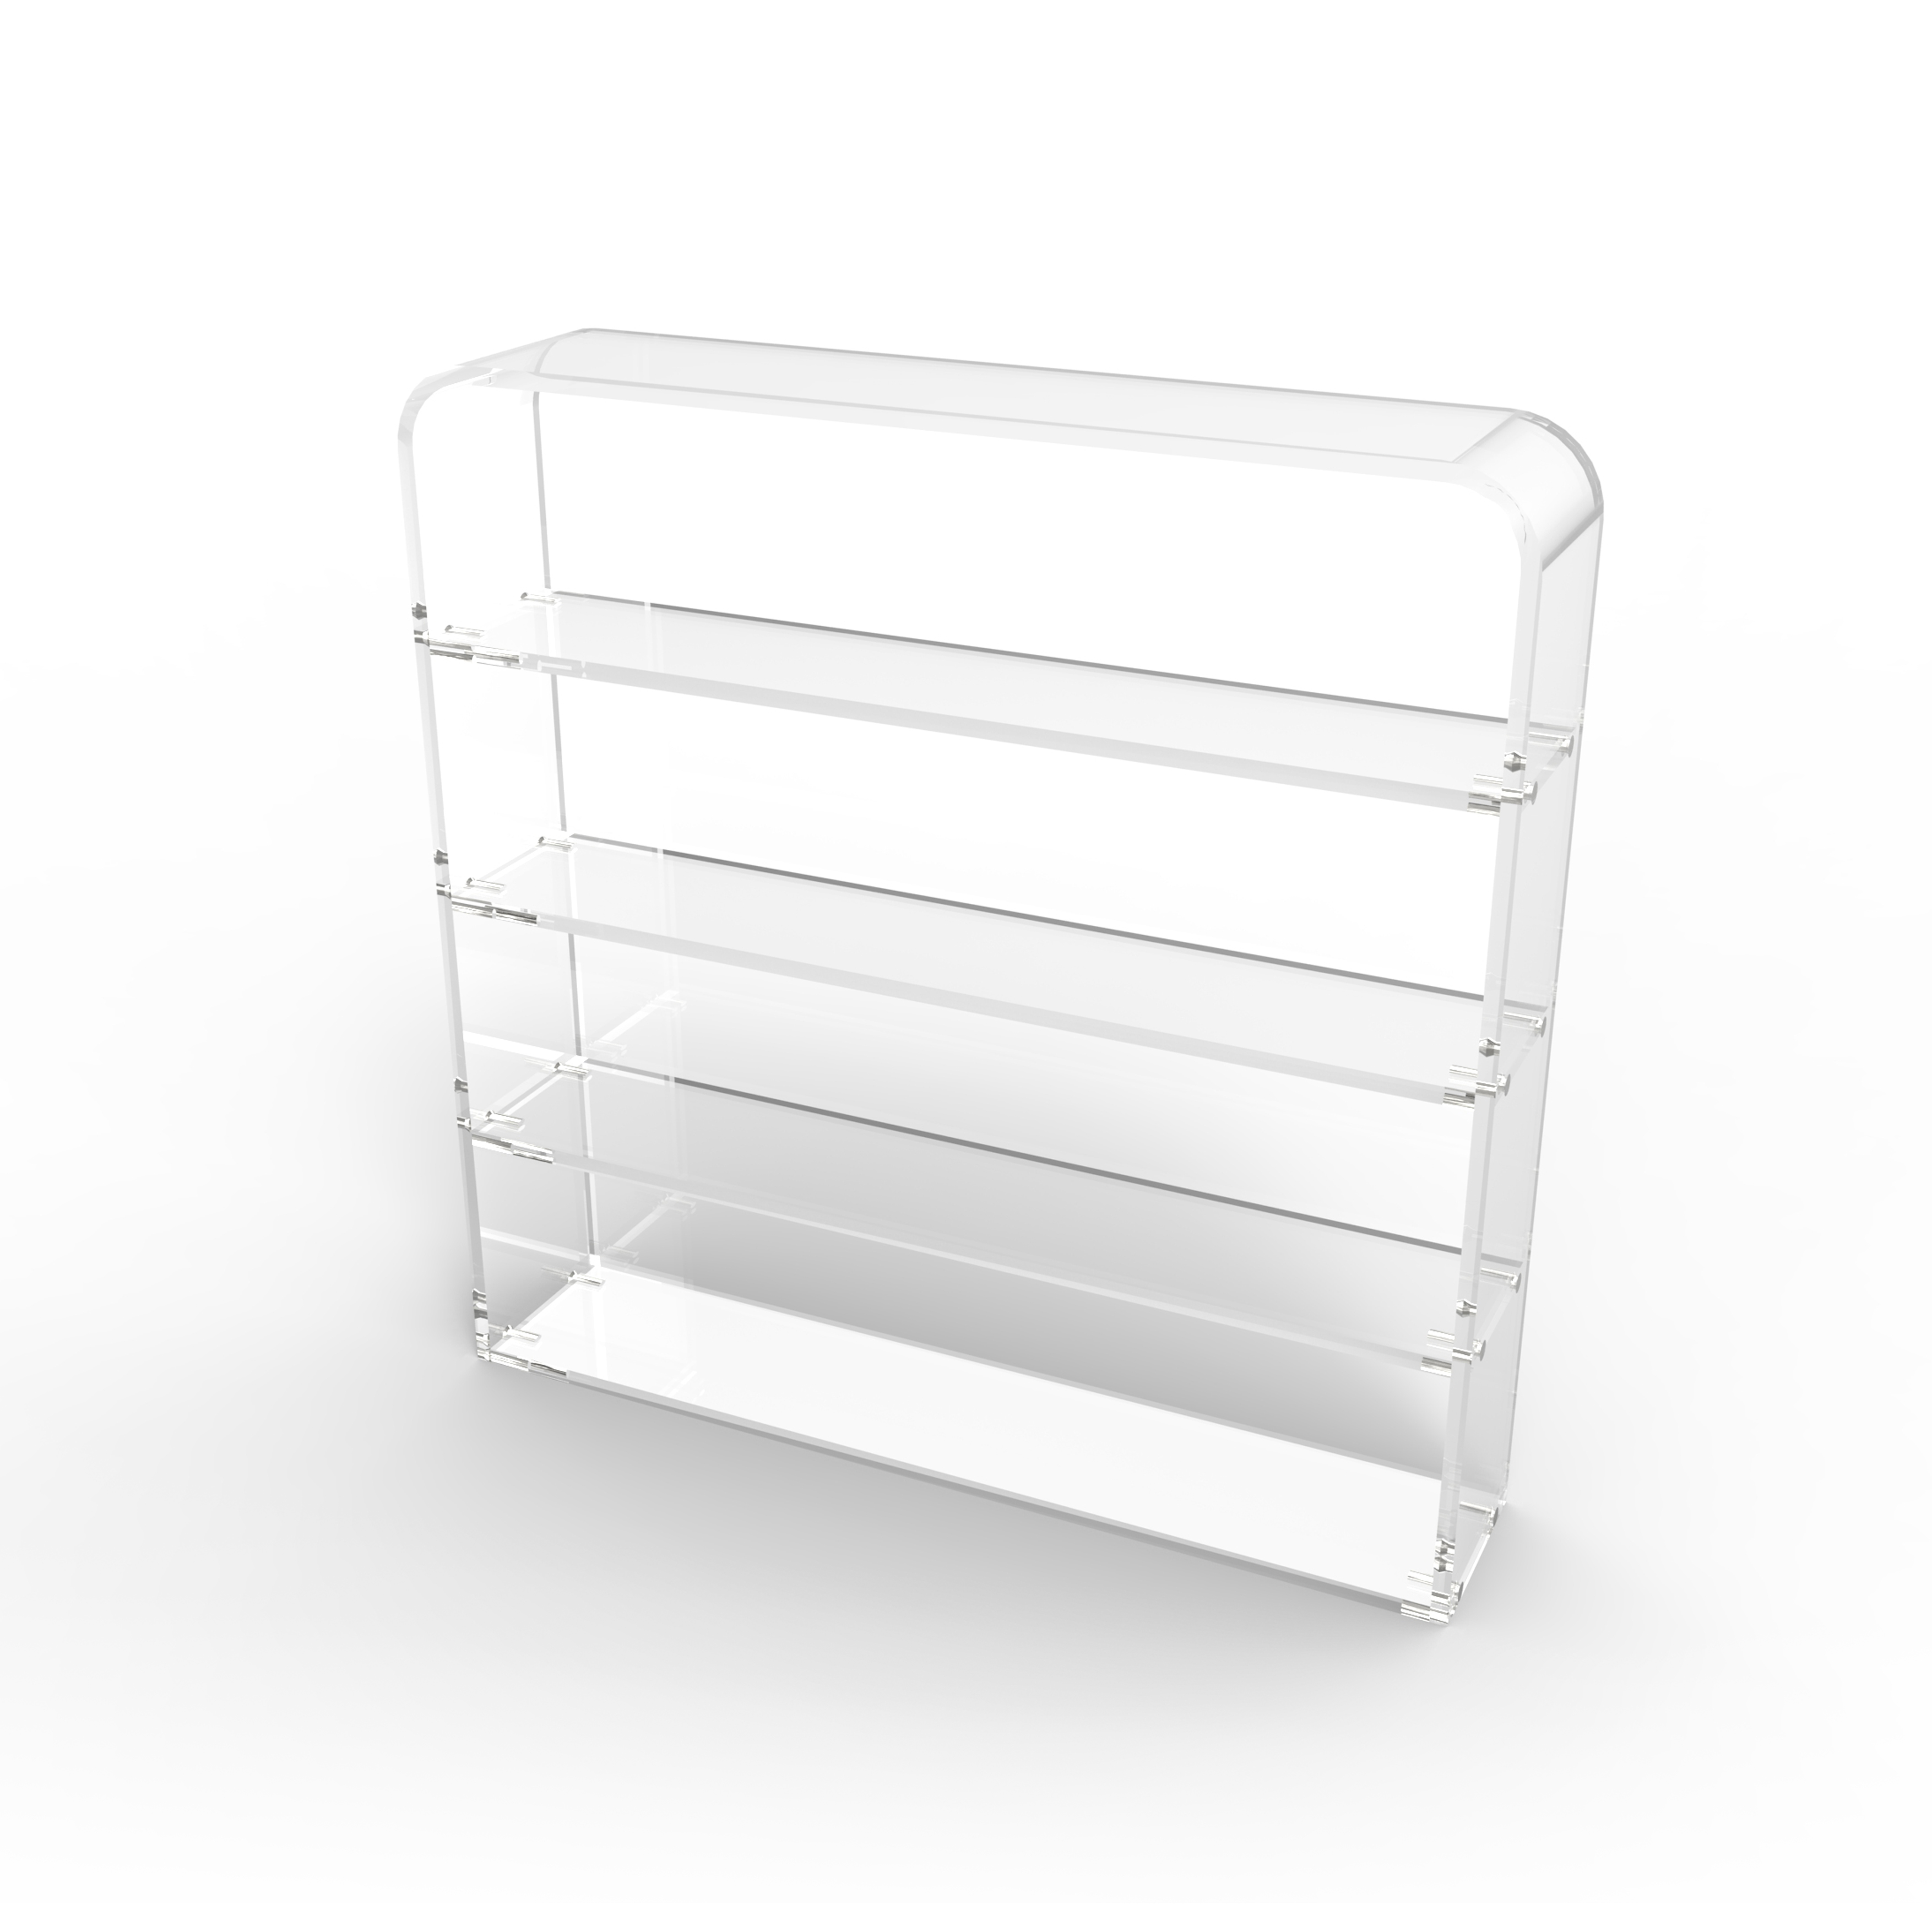 Acrylic Wall Mounted Cosmetic Display Holder